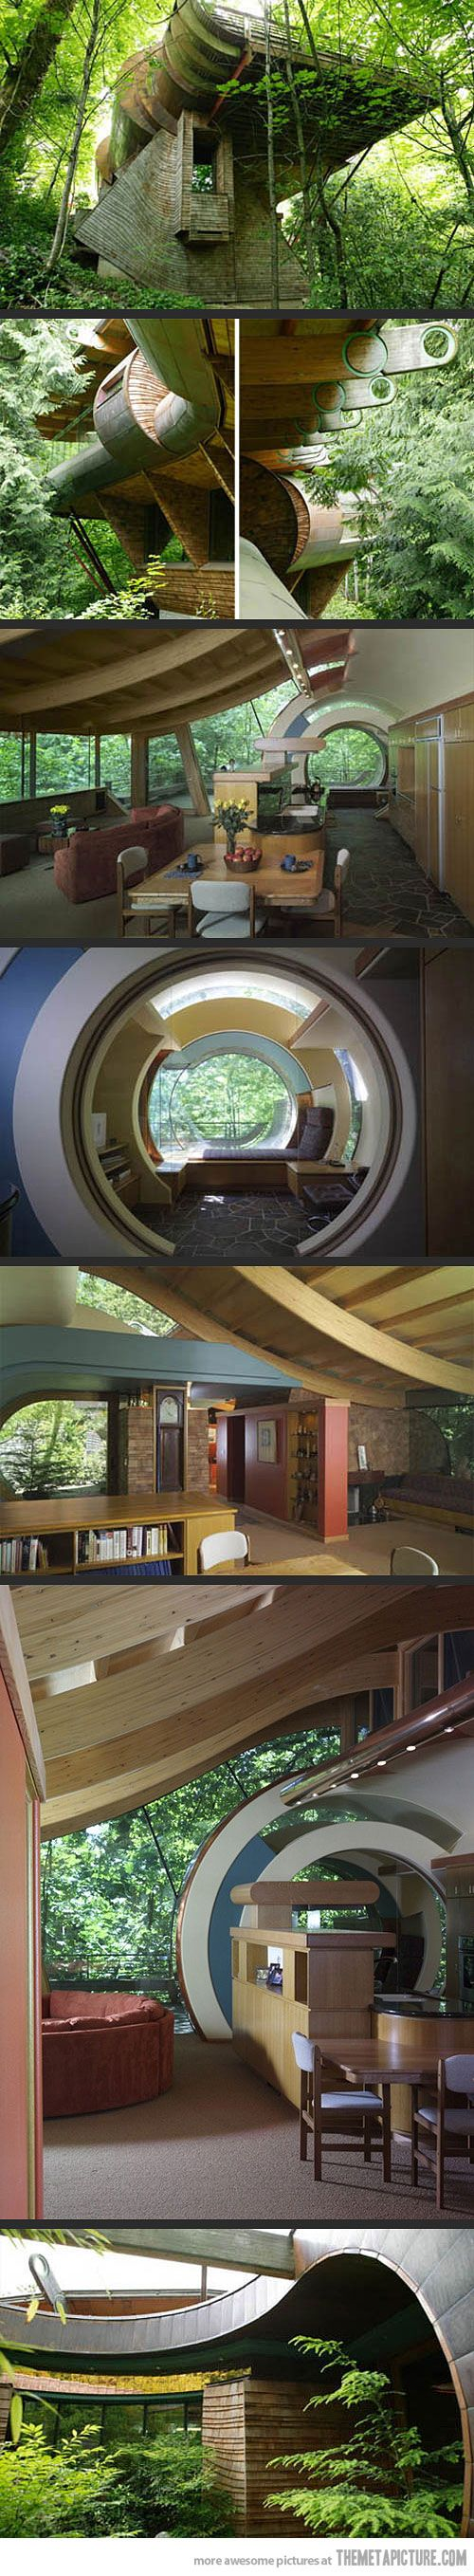 Wow ... I love how the architect has seamlessly integrated the structure into its surroundings.  I imagine that it would be like you were living in a treehouse ...